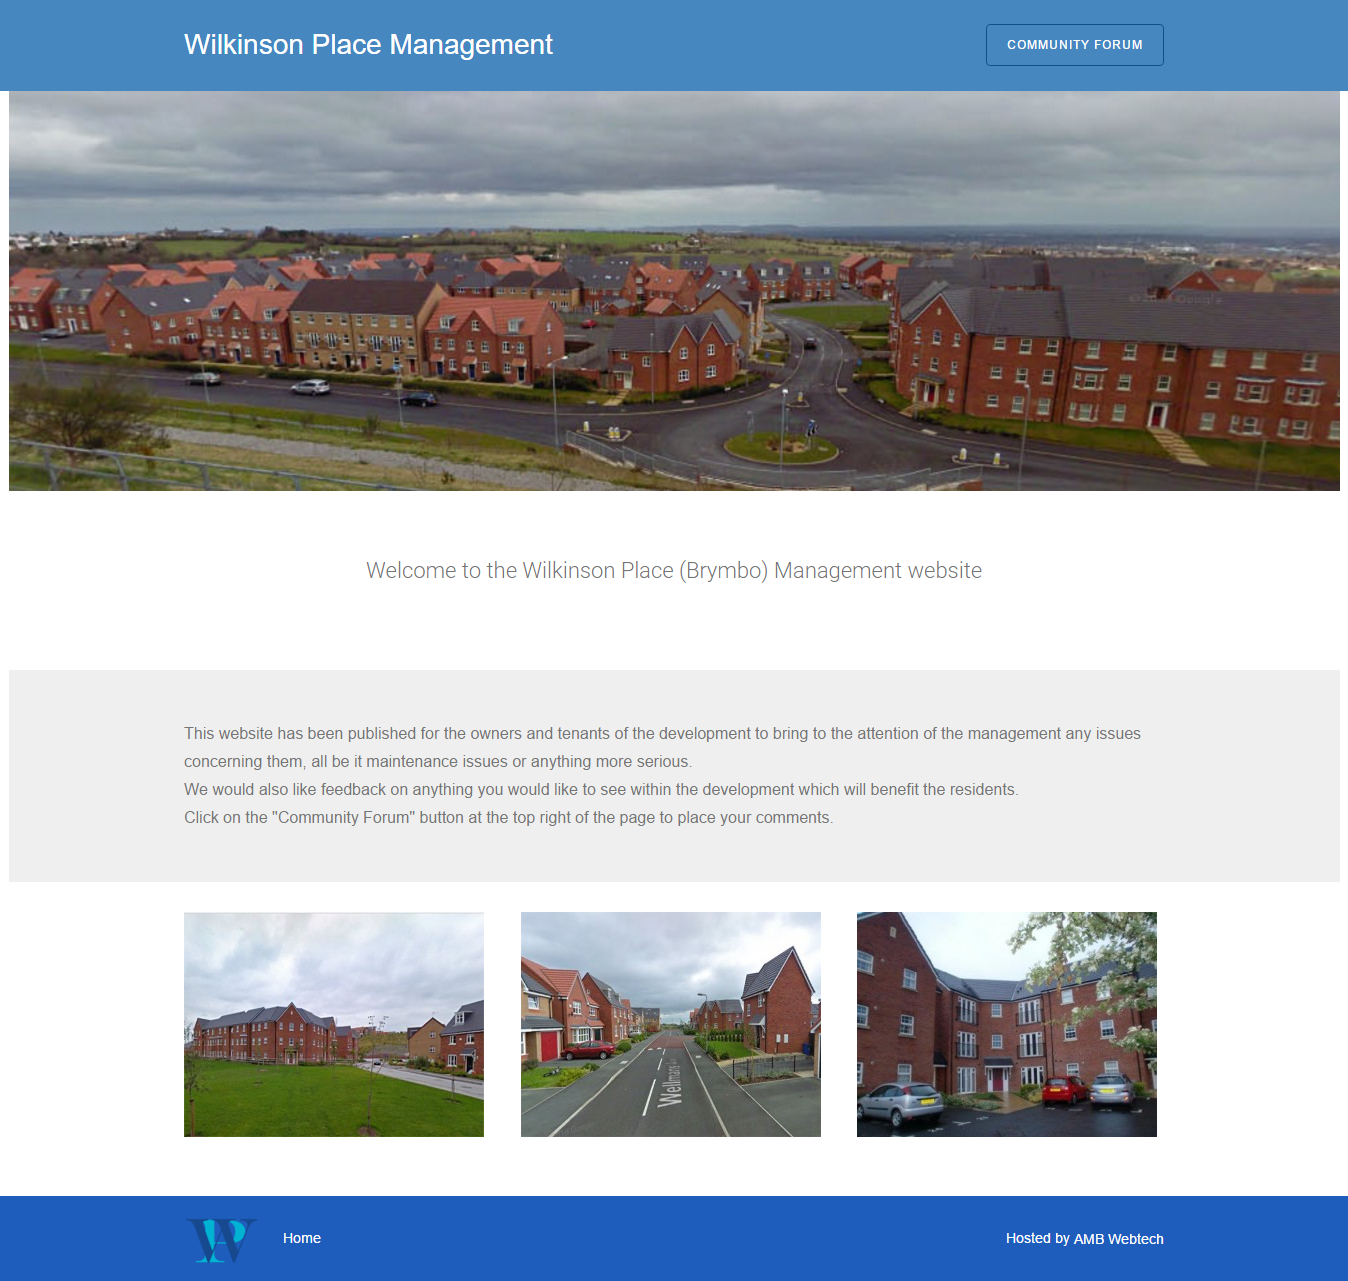 Wilkinson Place Management